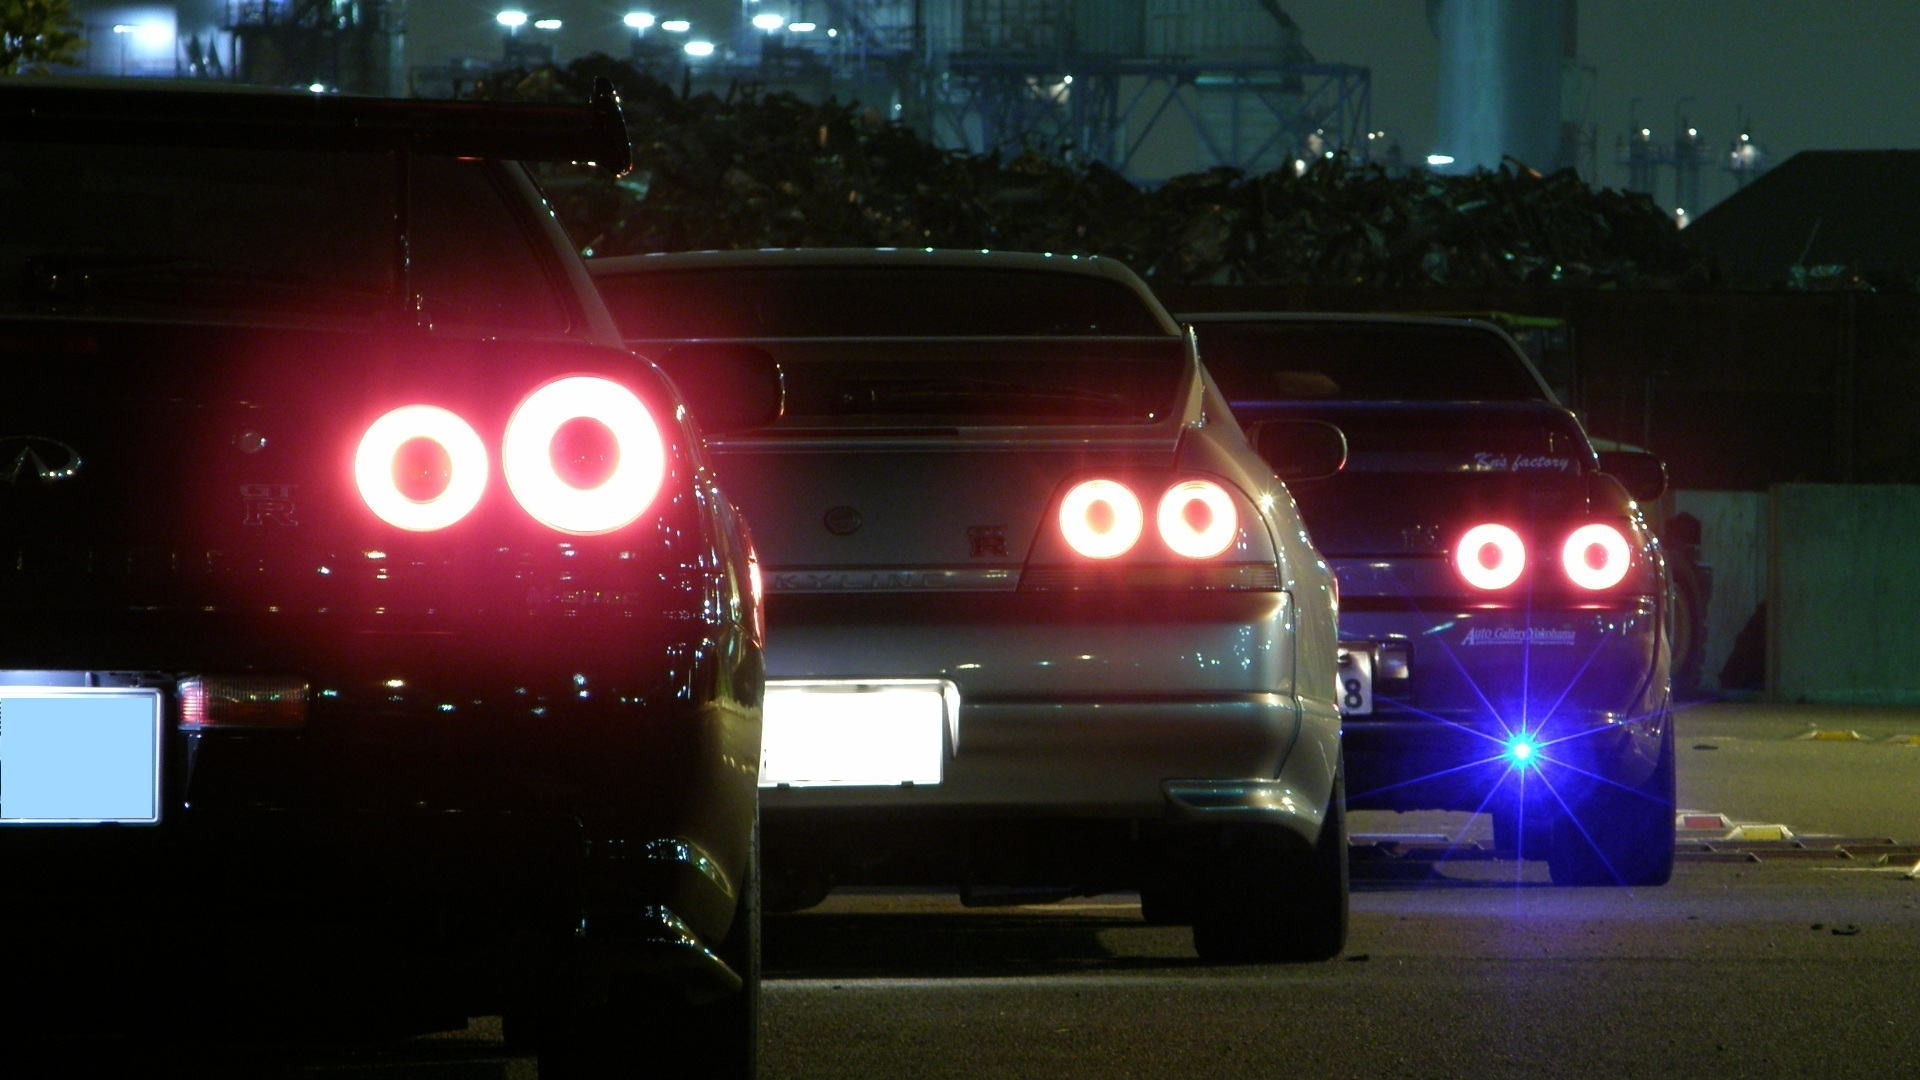 Cars Backview Vehicles Nissan Skyline R32 Gtr Jdm Nissan